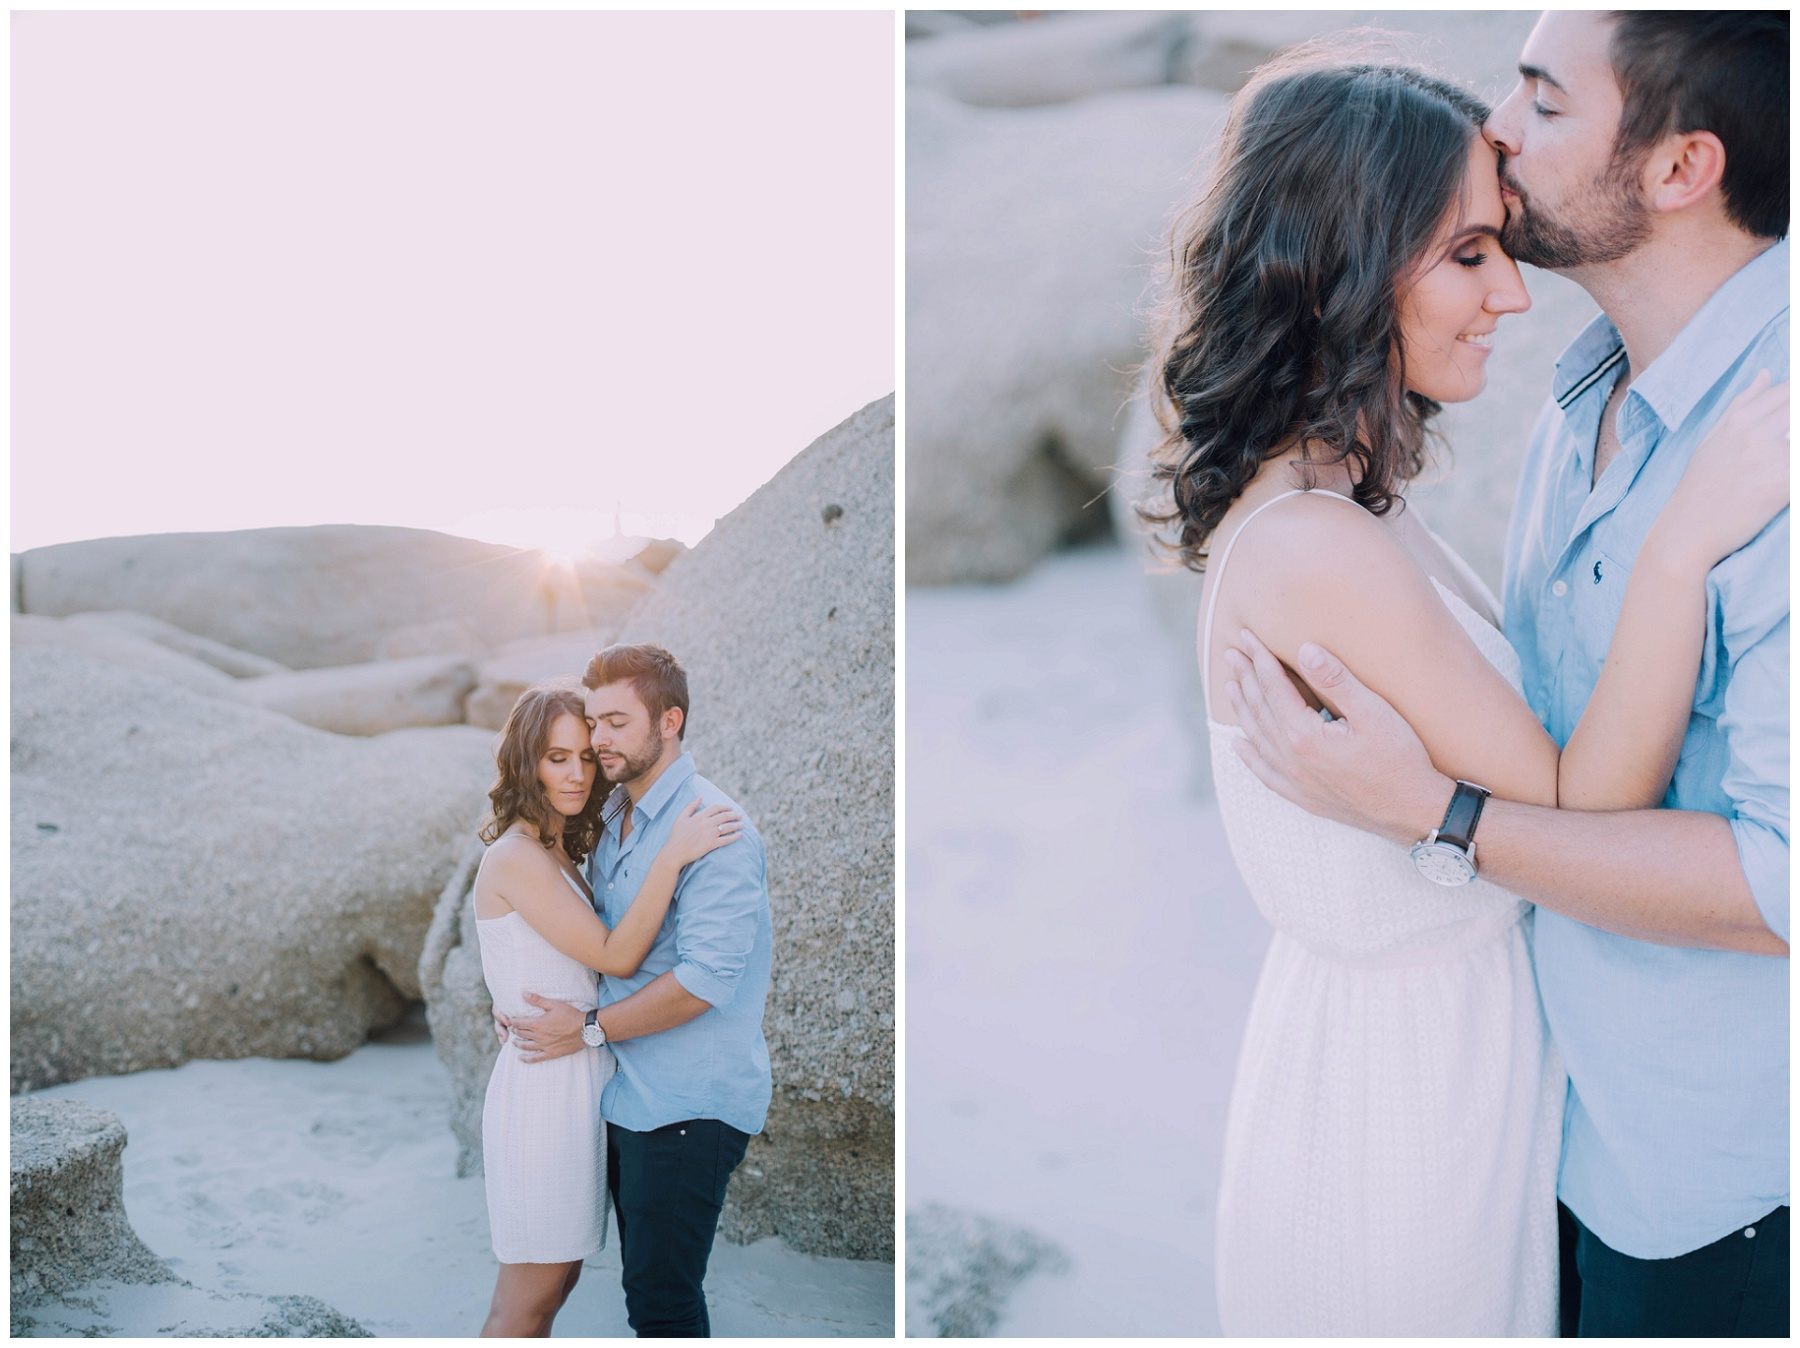 Ronel Kruger Cape Town Wedding and Lifestyle Photographer_8462.jpg